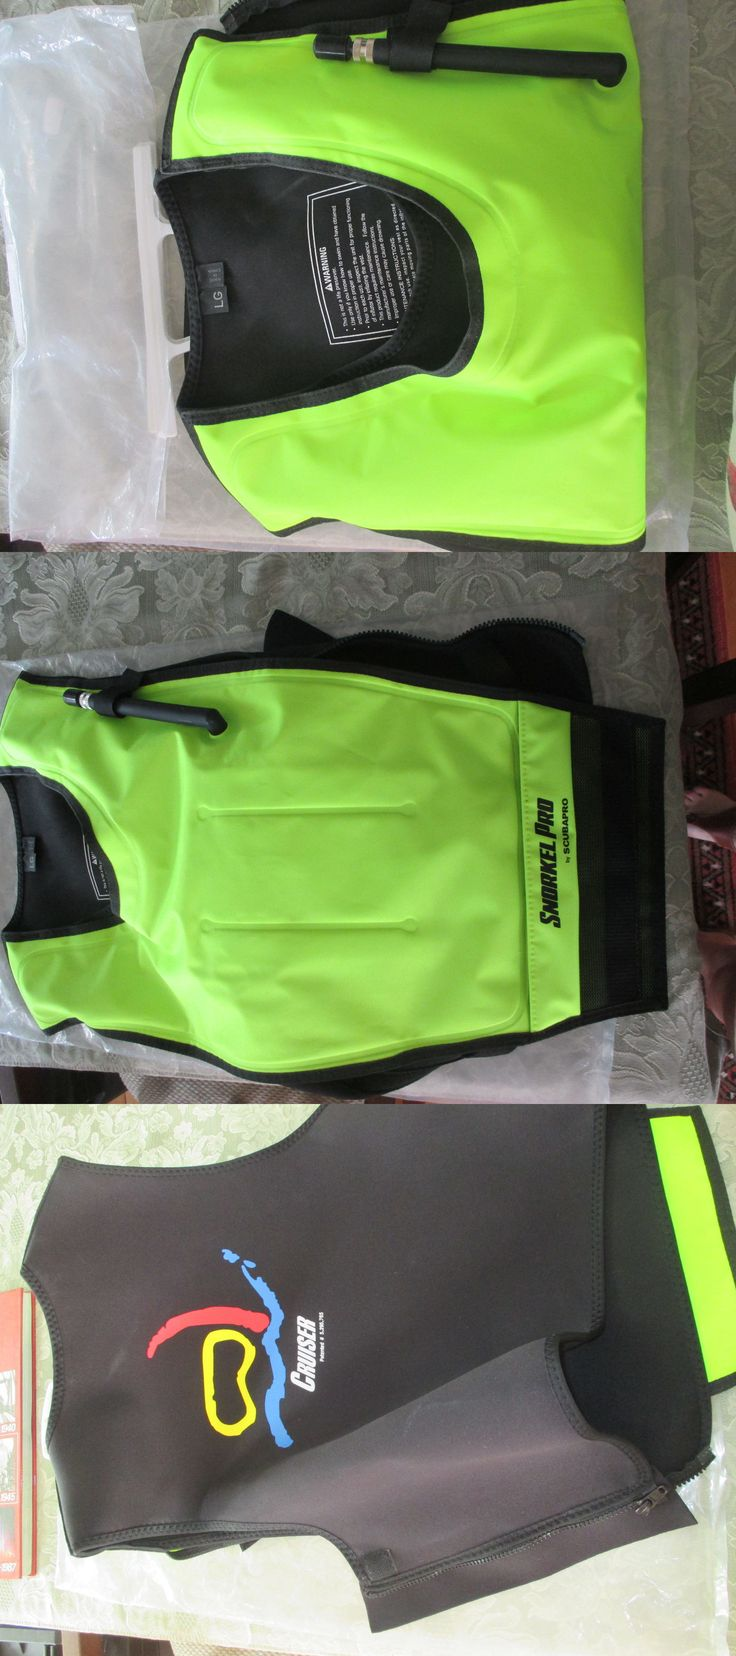 Buoyancy Compensators 16053: Scubapro Cruiser Snorkeling Vest Size Lg, Green Black -> BUY IT NOW ONLY: $55 on eBay!